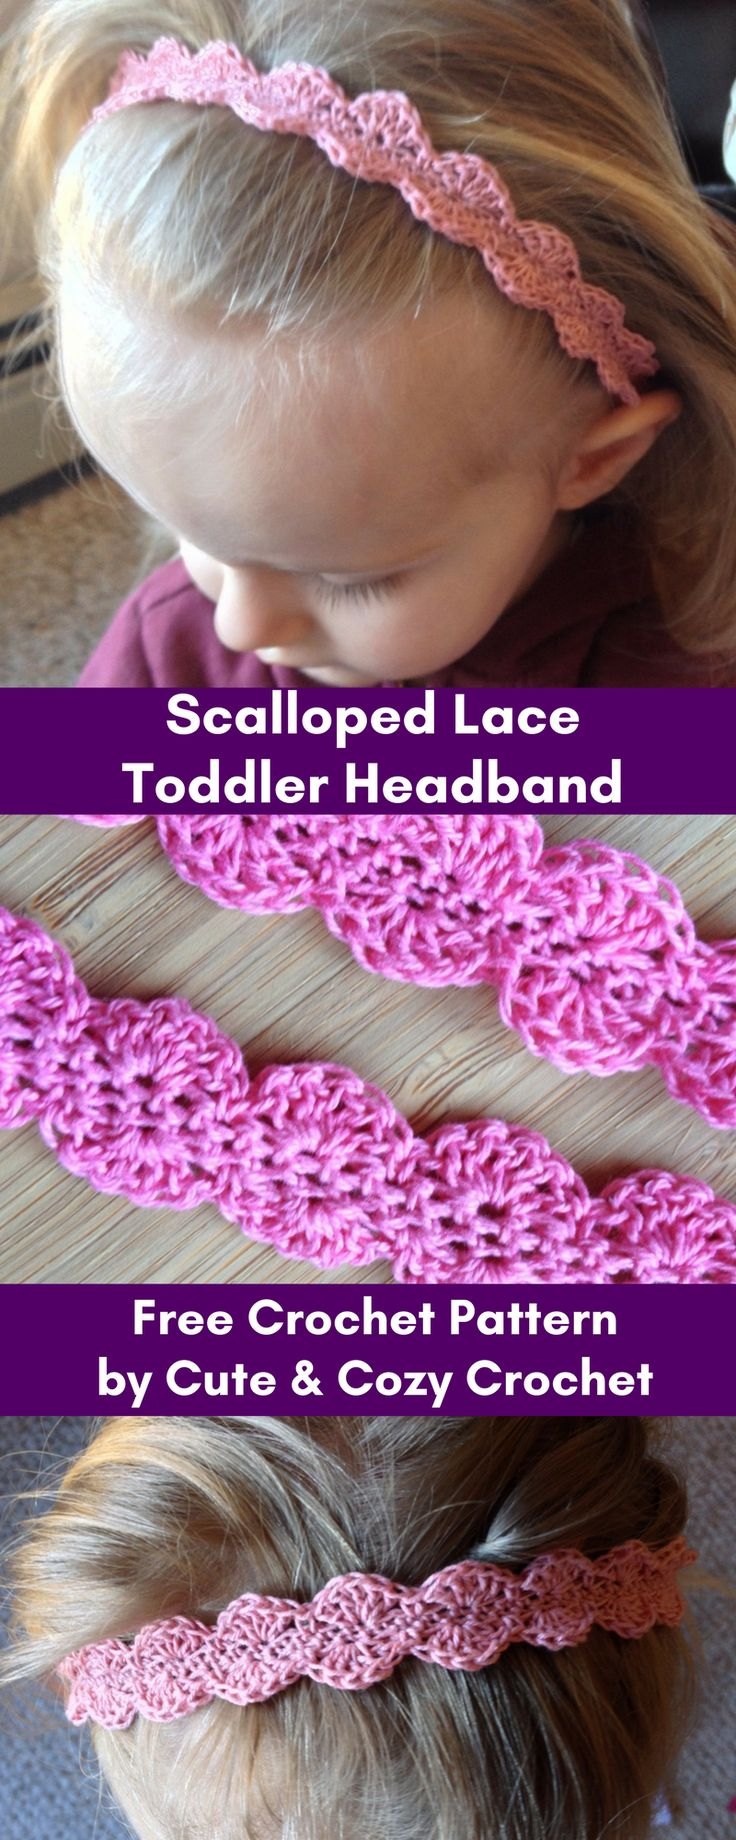 Scalloped Lace Toddler Headband